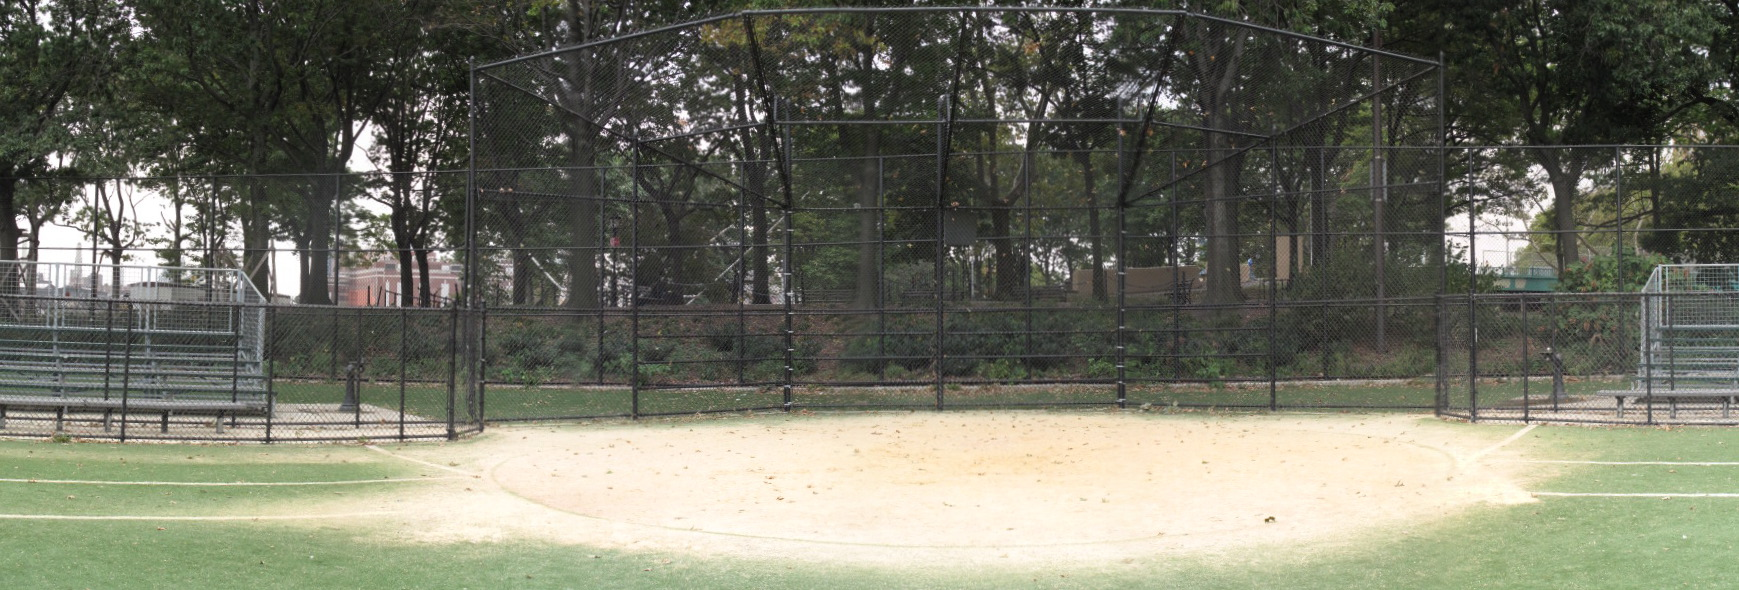 Ext Baseball field